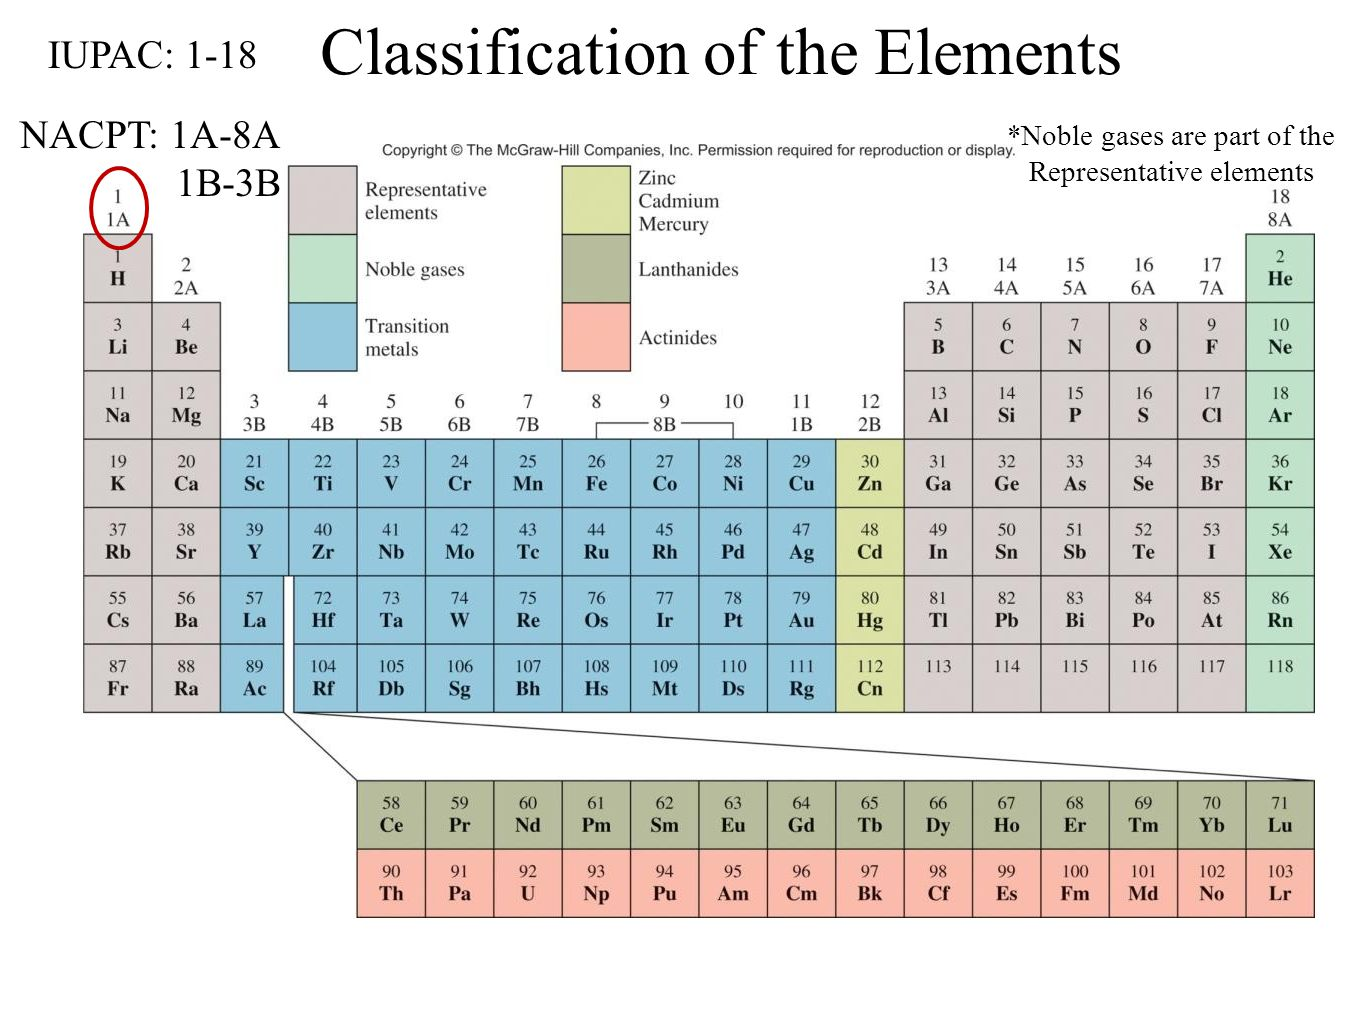 History and trends of the periodic table ppt video online download noble gases are part of the representative elements gamestrikefo Image collections